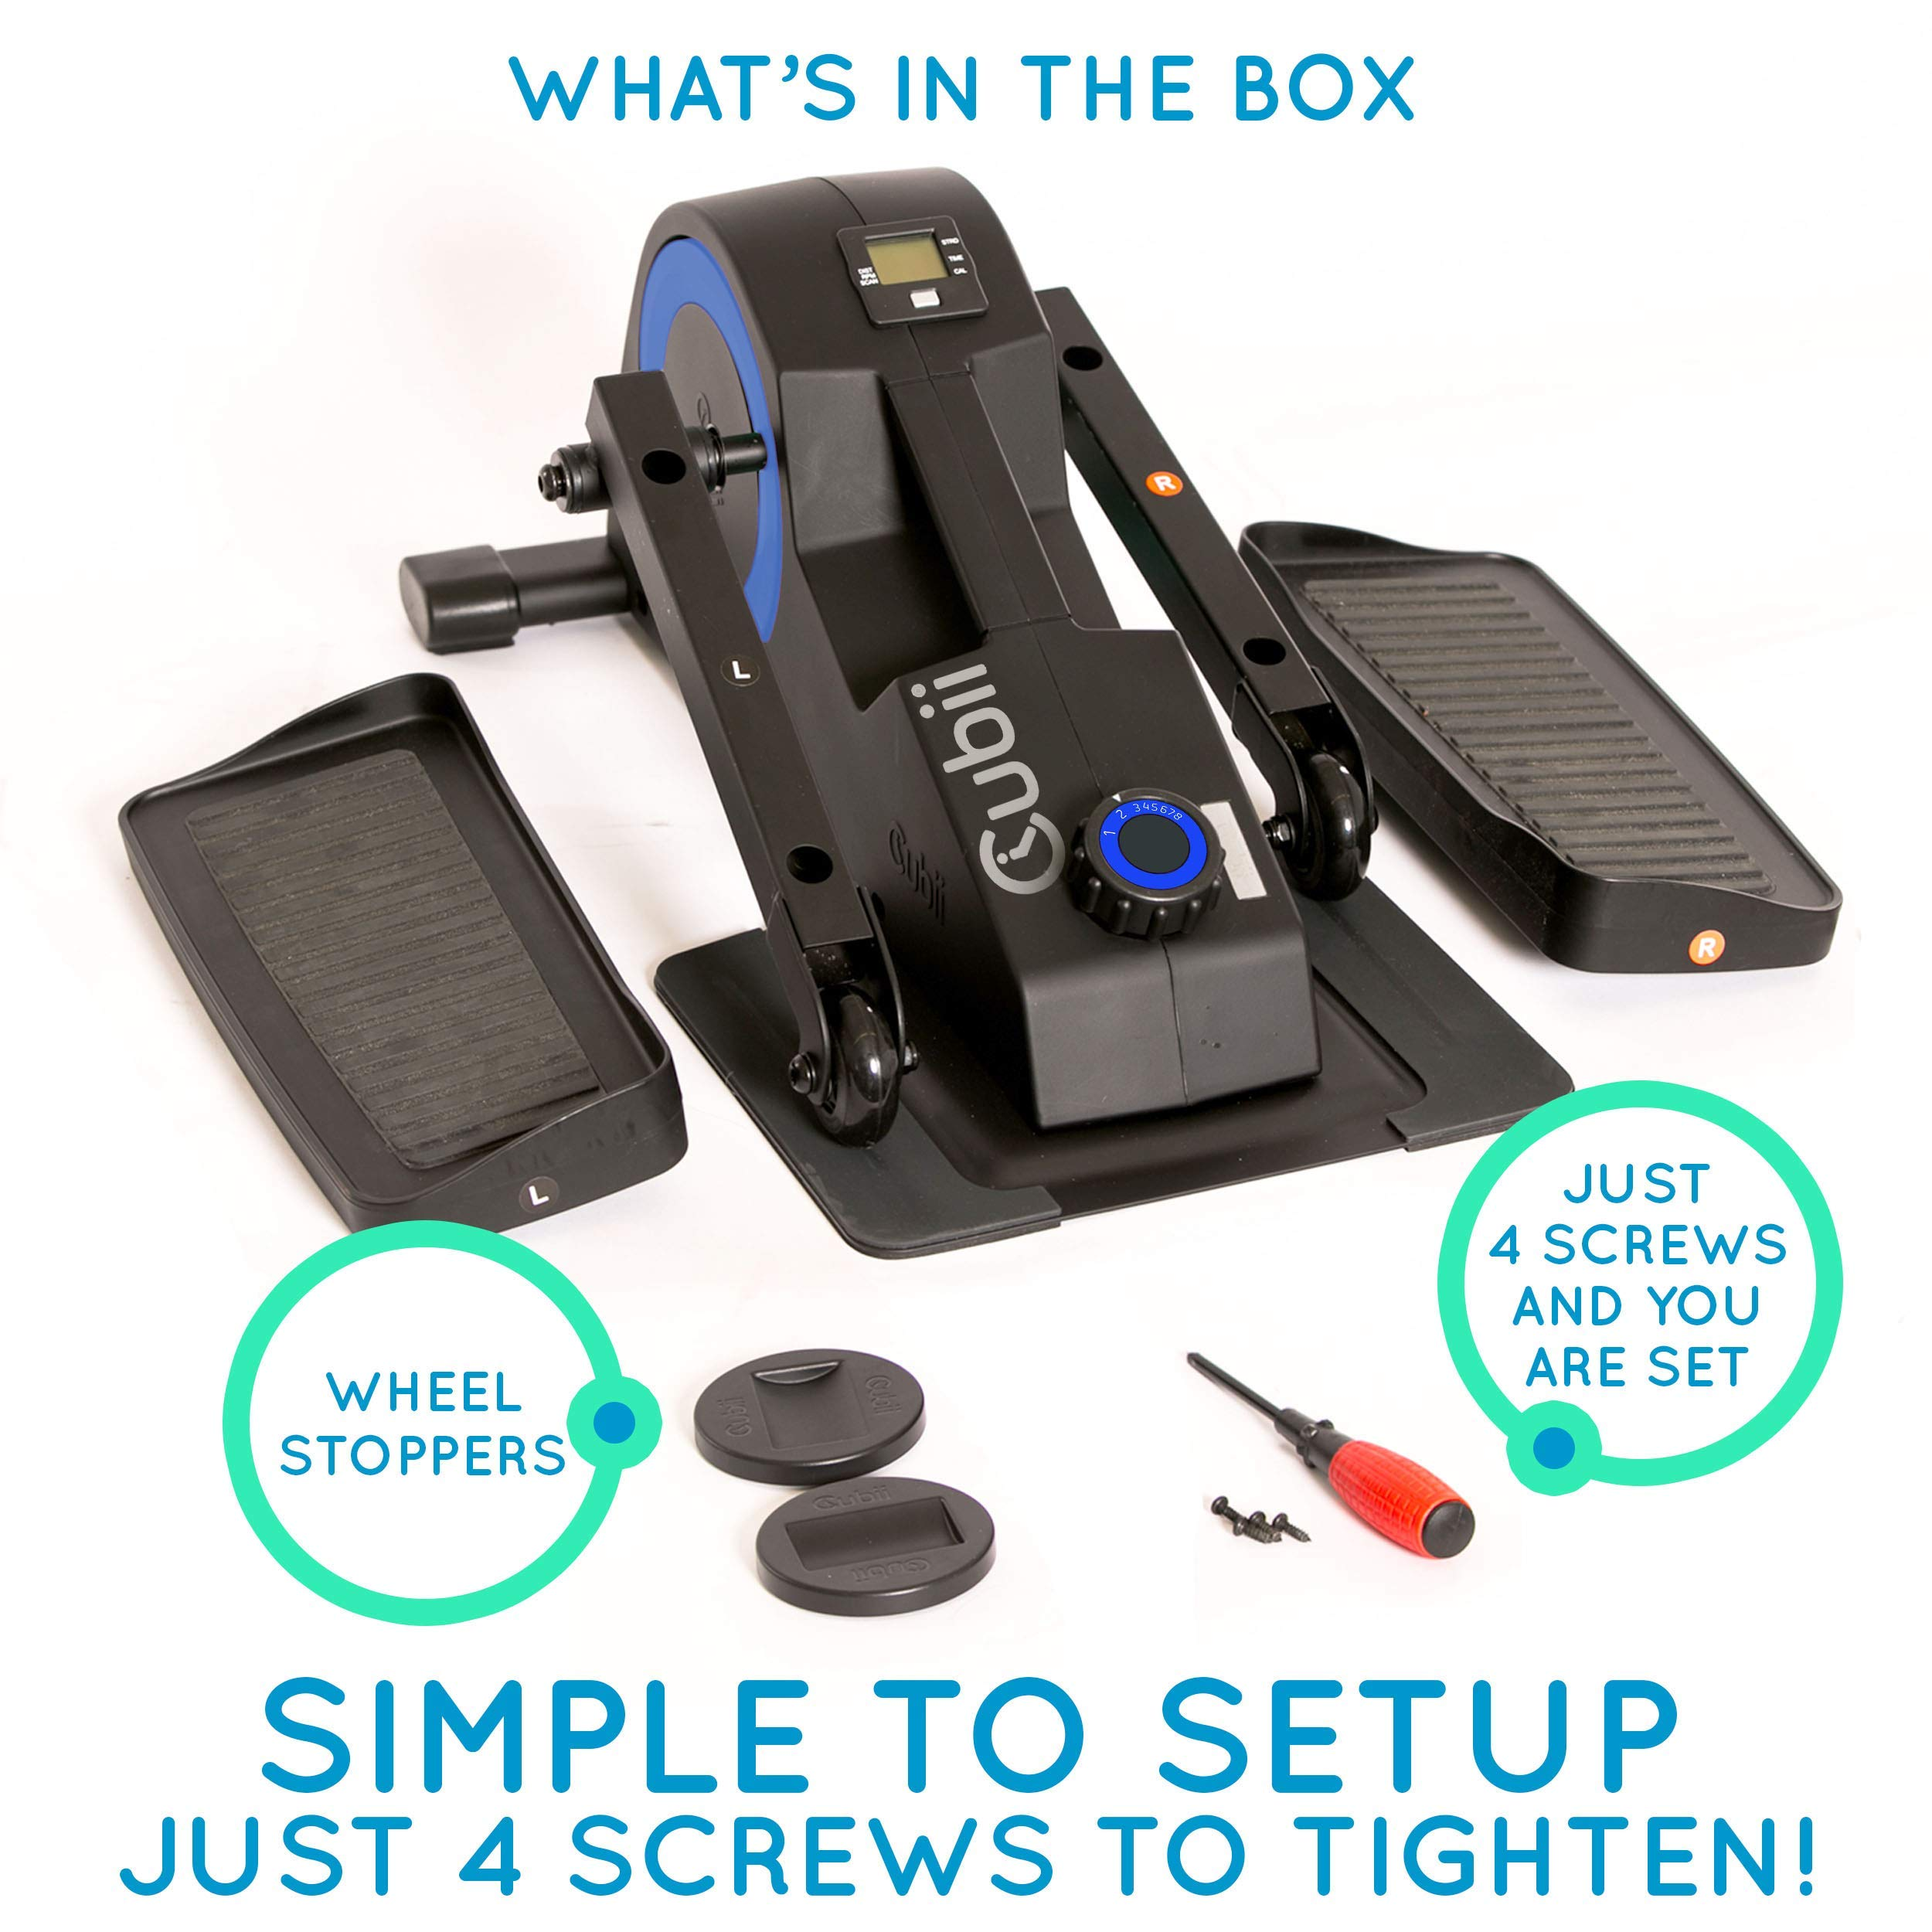 Cubii Jr: Desk Elliptical with Built in Display Monitor, Easy Assembly, Quiet & Compact, Adjustable Resistance (Royal Blue) (Renewed) by Cubii (Image #9)